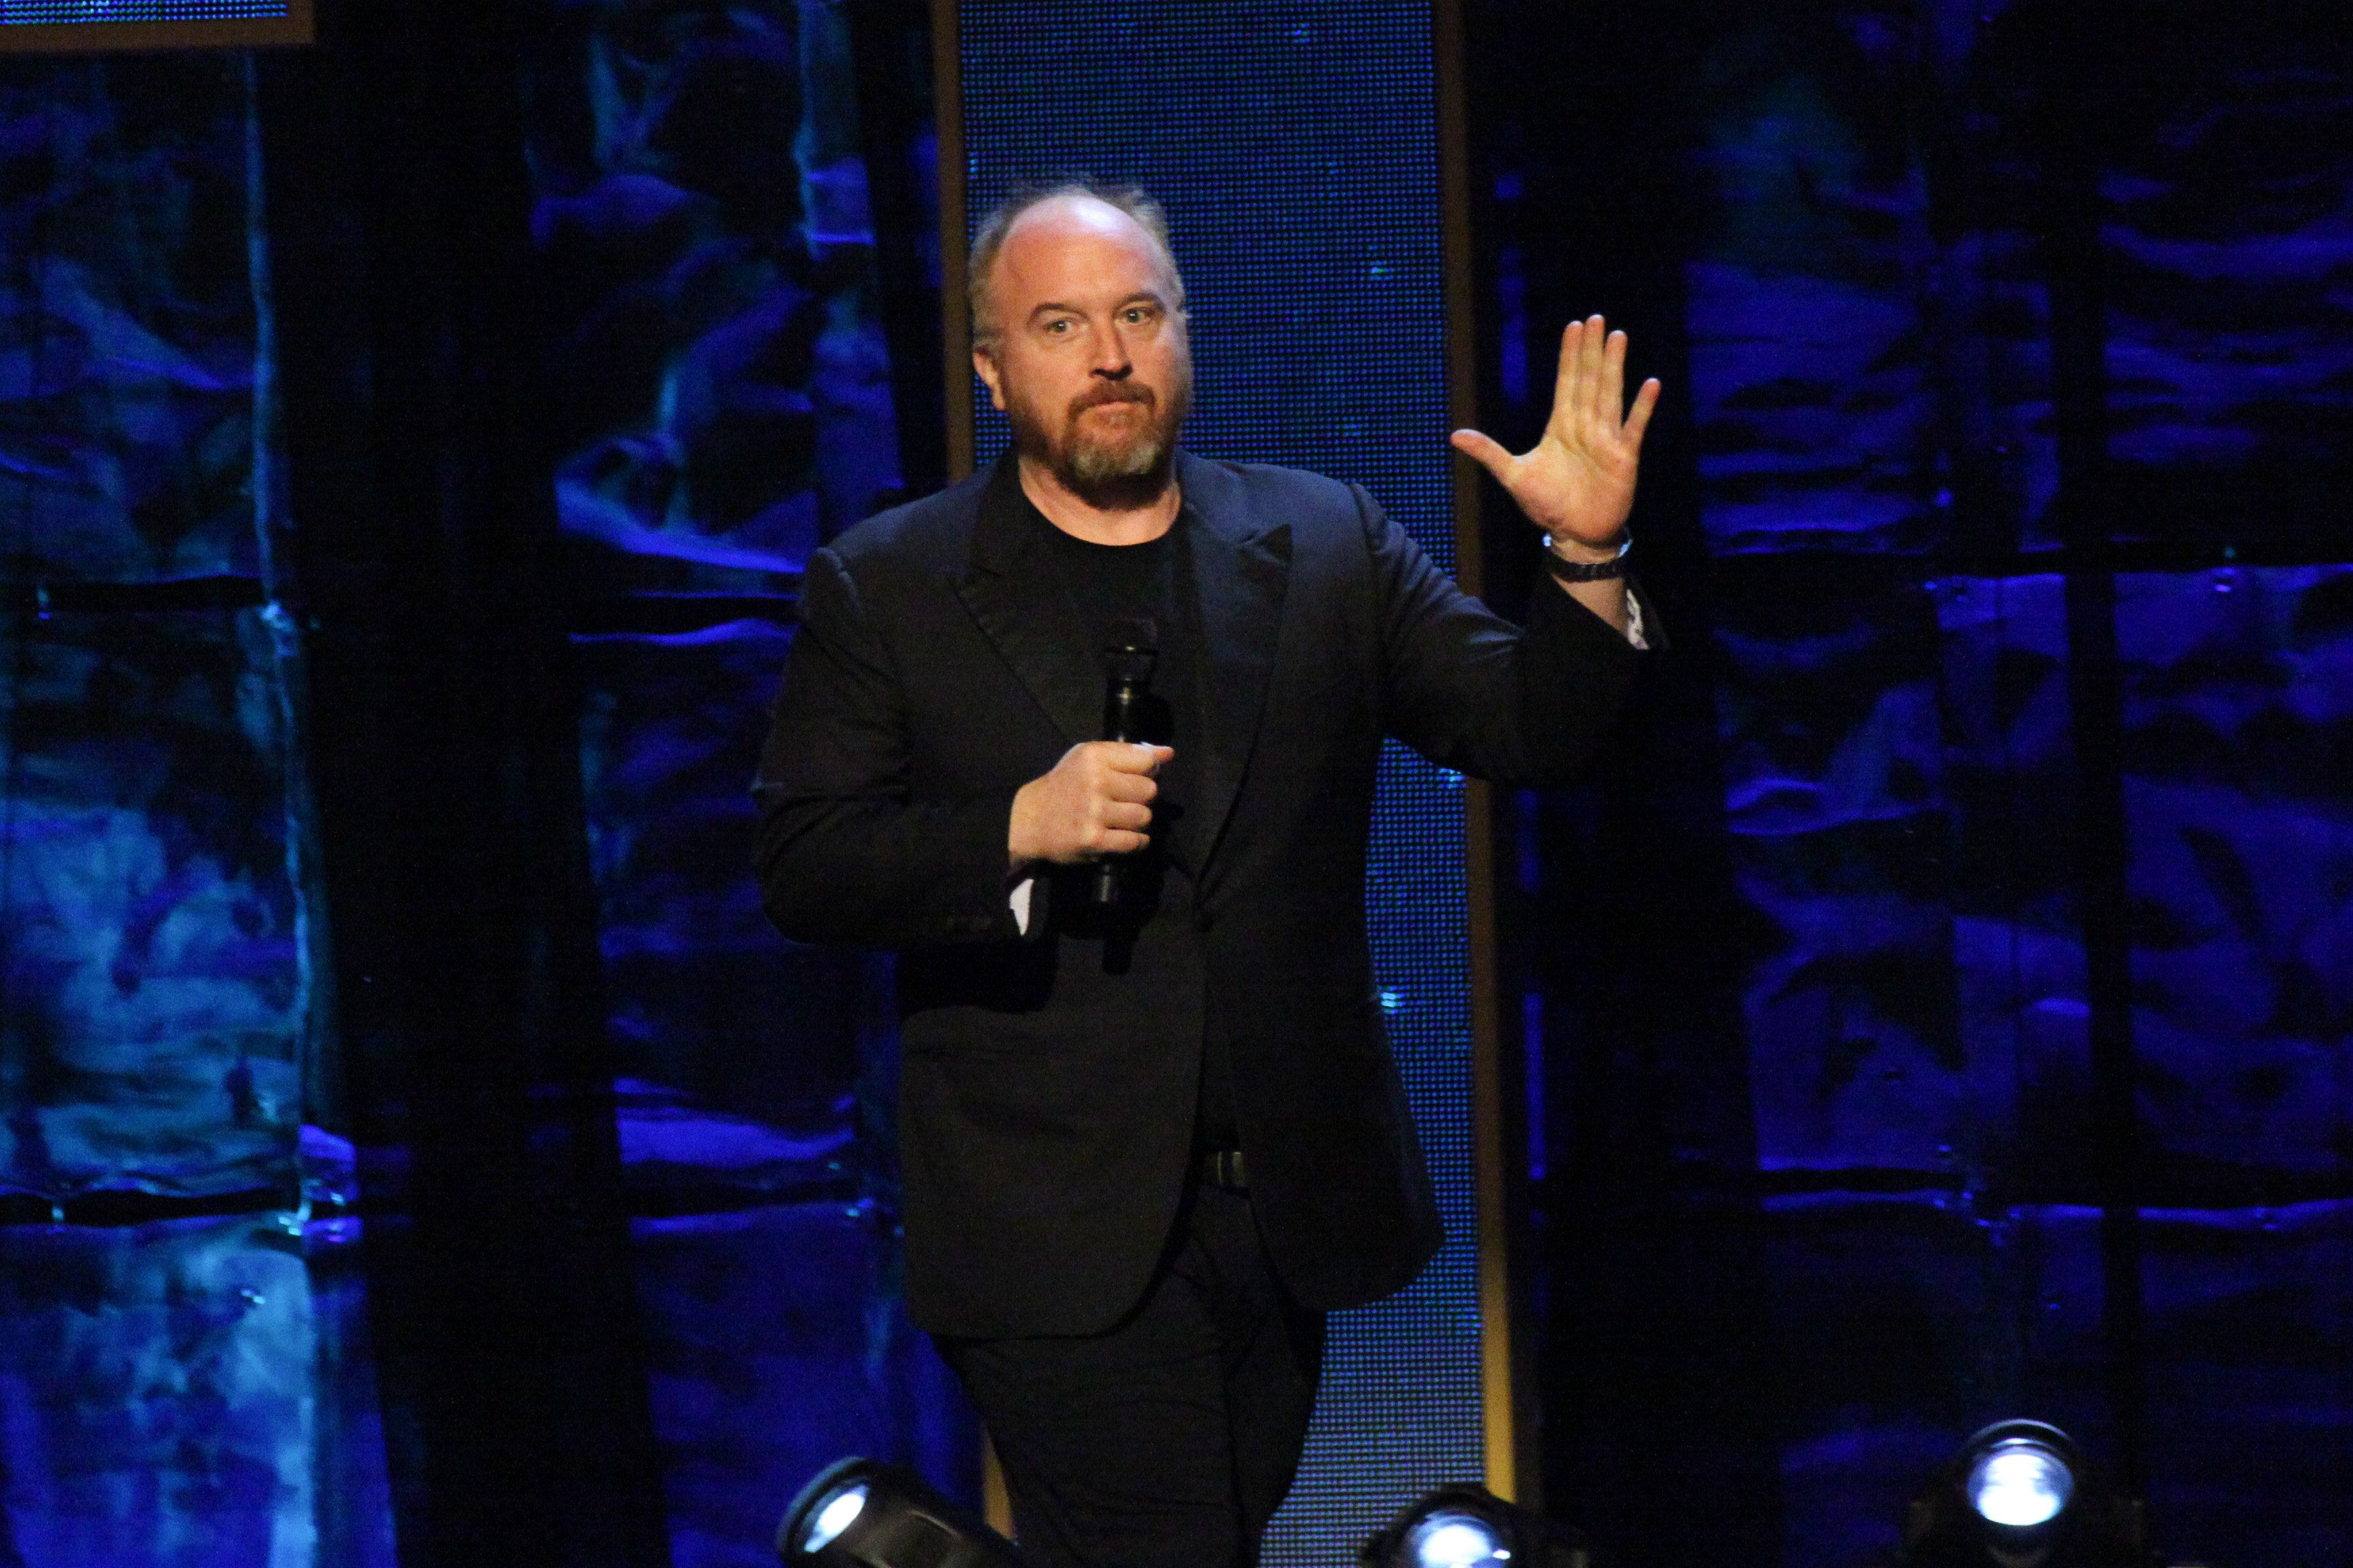 "Louis C.K. faced scrutiny for <a href=""https://www.huffingtonpost.com/entry/louis-ck-finally-responds-to-longstanding-stories"